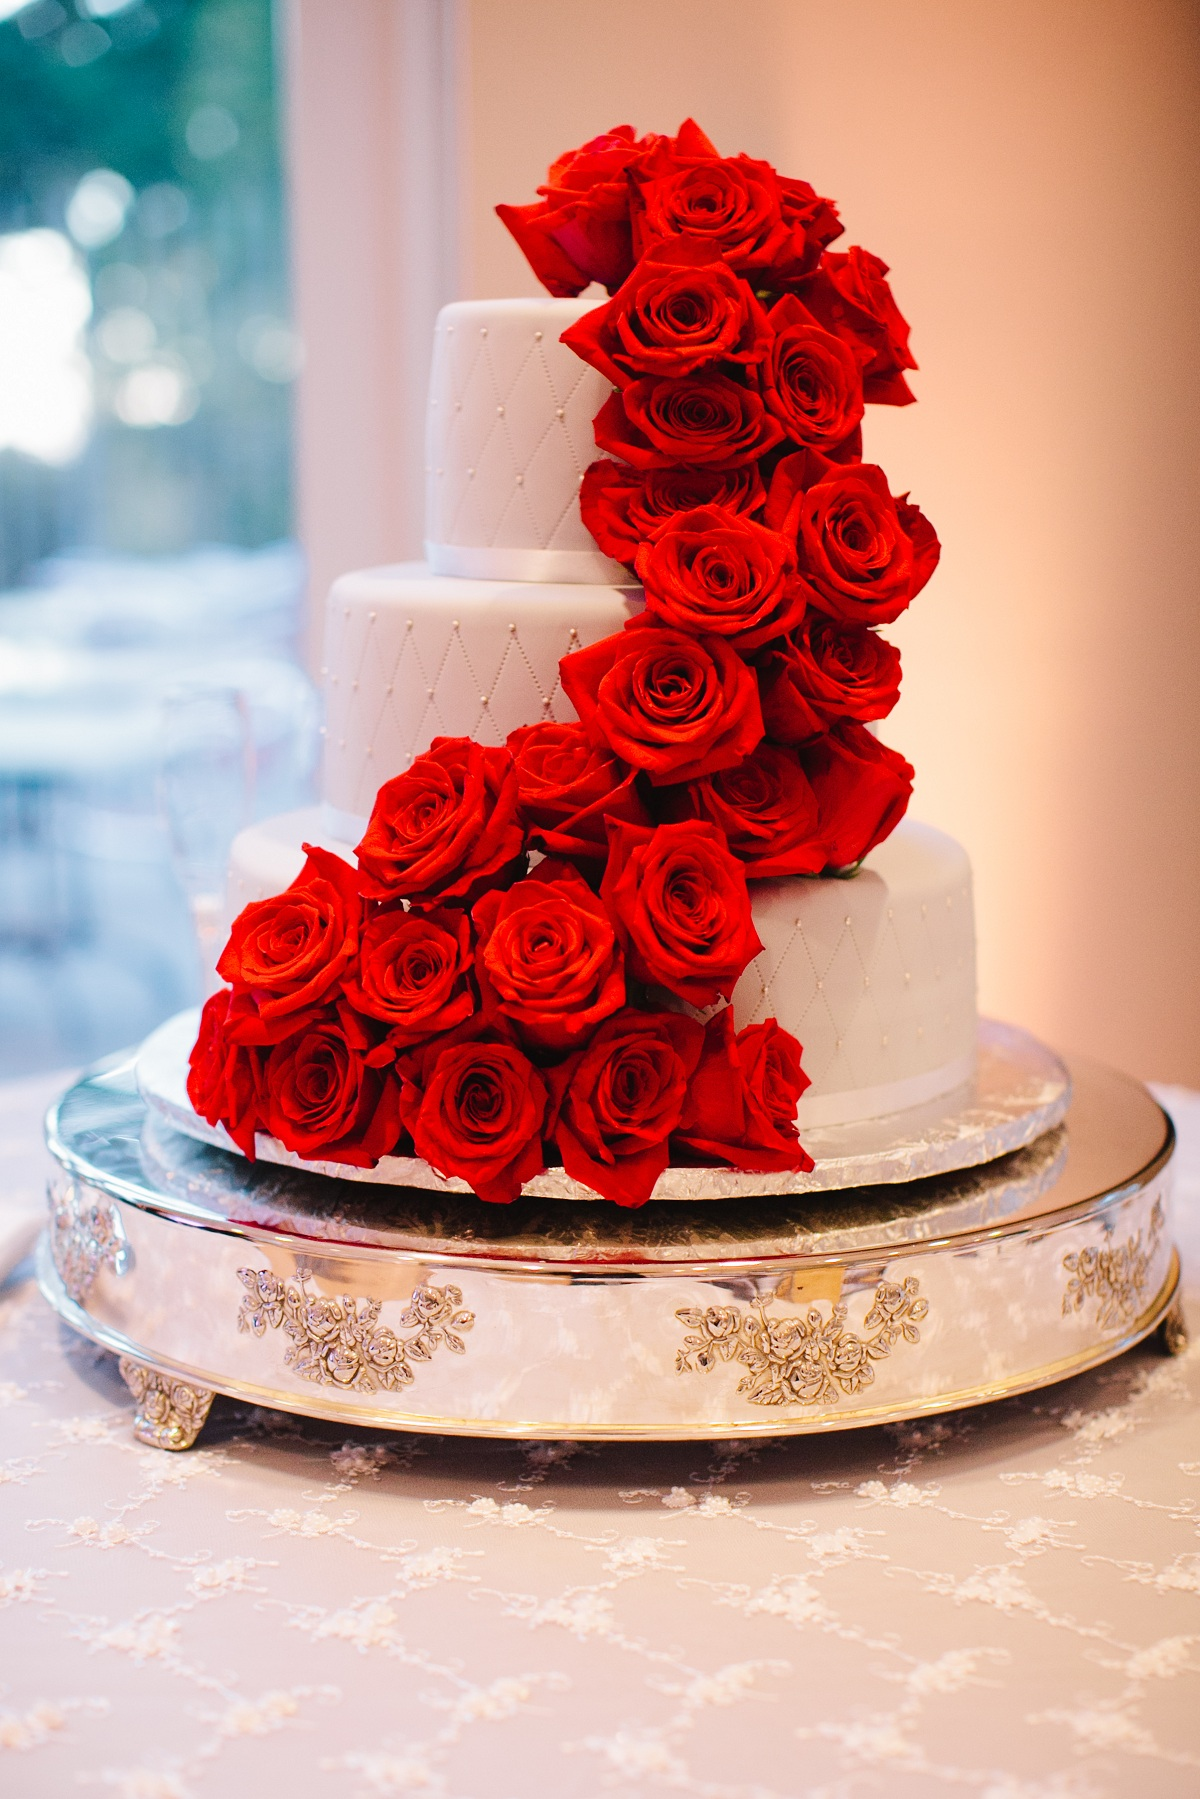 Cakes, Real Weddings, Wedding Style, red, Wedding Cakes, Fall Weddings, West Coast Real Weddings, Fall Real Weddings, Roses, Crimson, West Coast Weddings, Romantic Real Weddings, Glamorous Real Weddings, Glamorous Weddings, Romantic Real Wedding, Red Wedding Cake